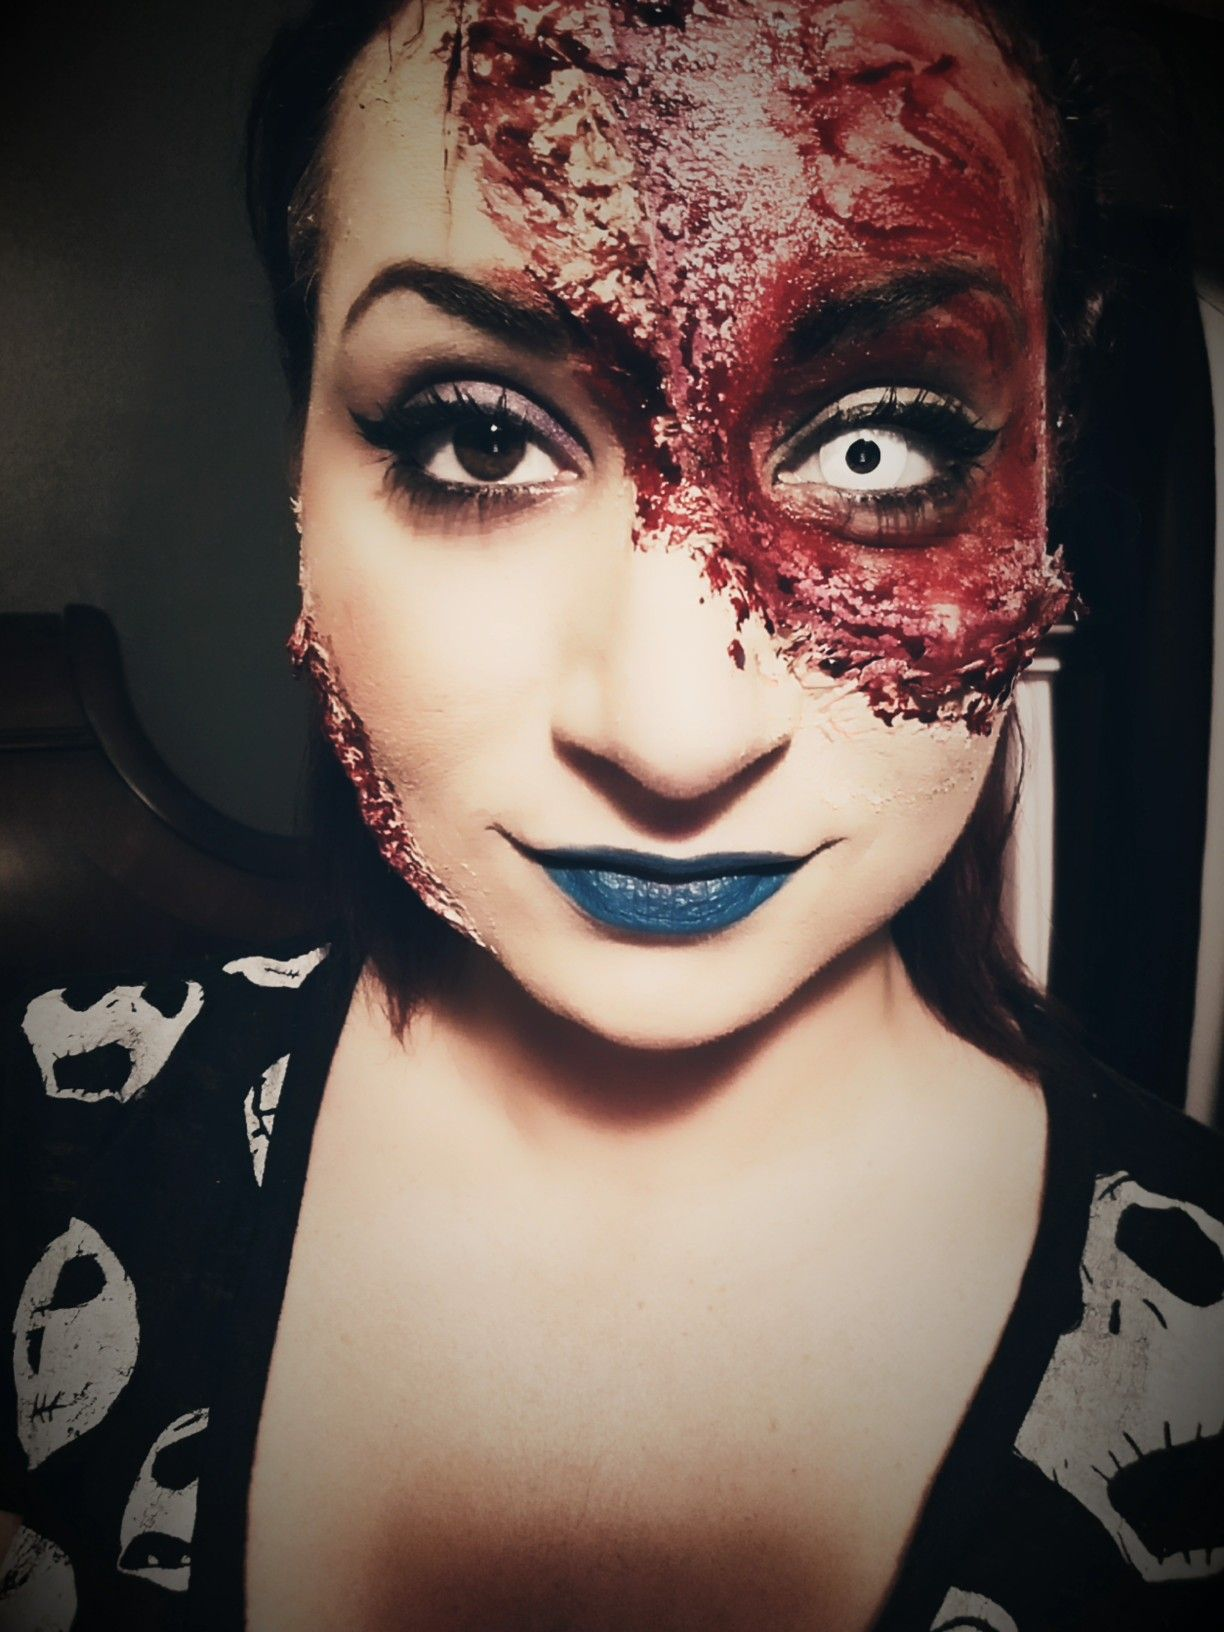 Pin by Brittany Hunter on FX makeup (With images) | Fx